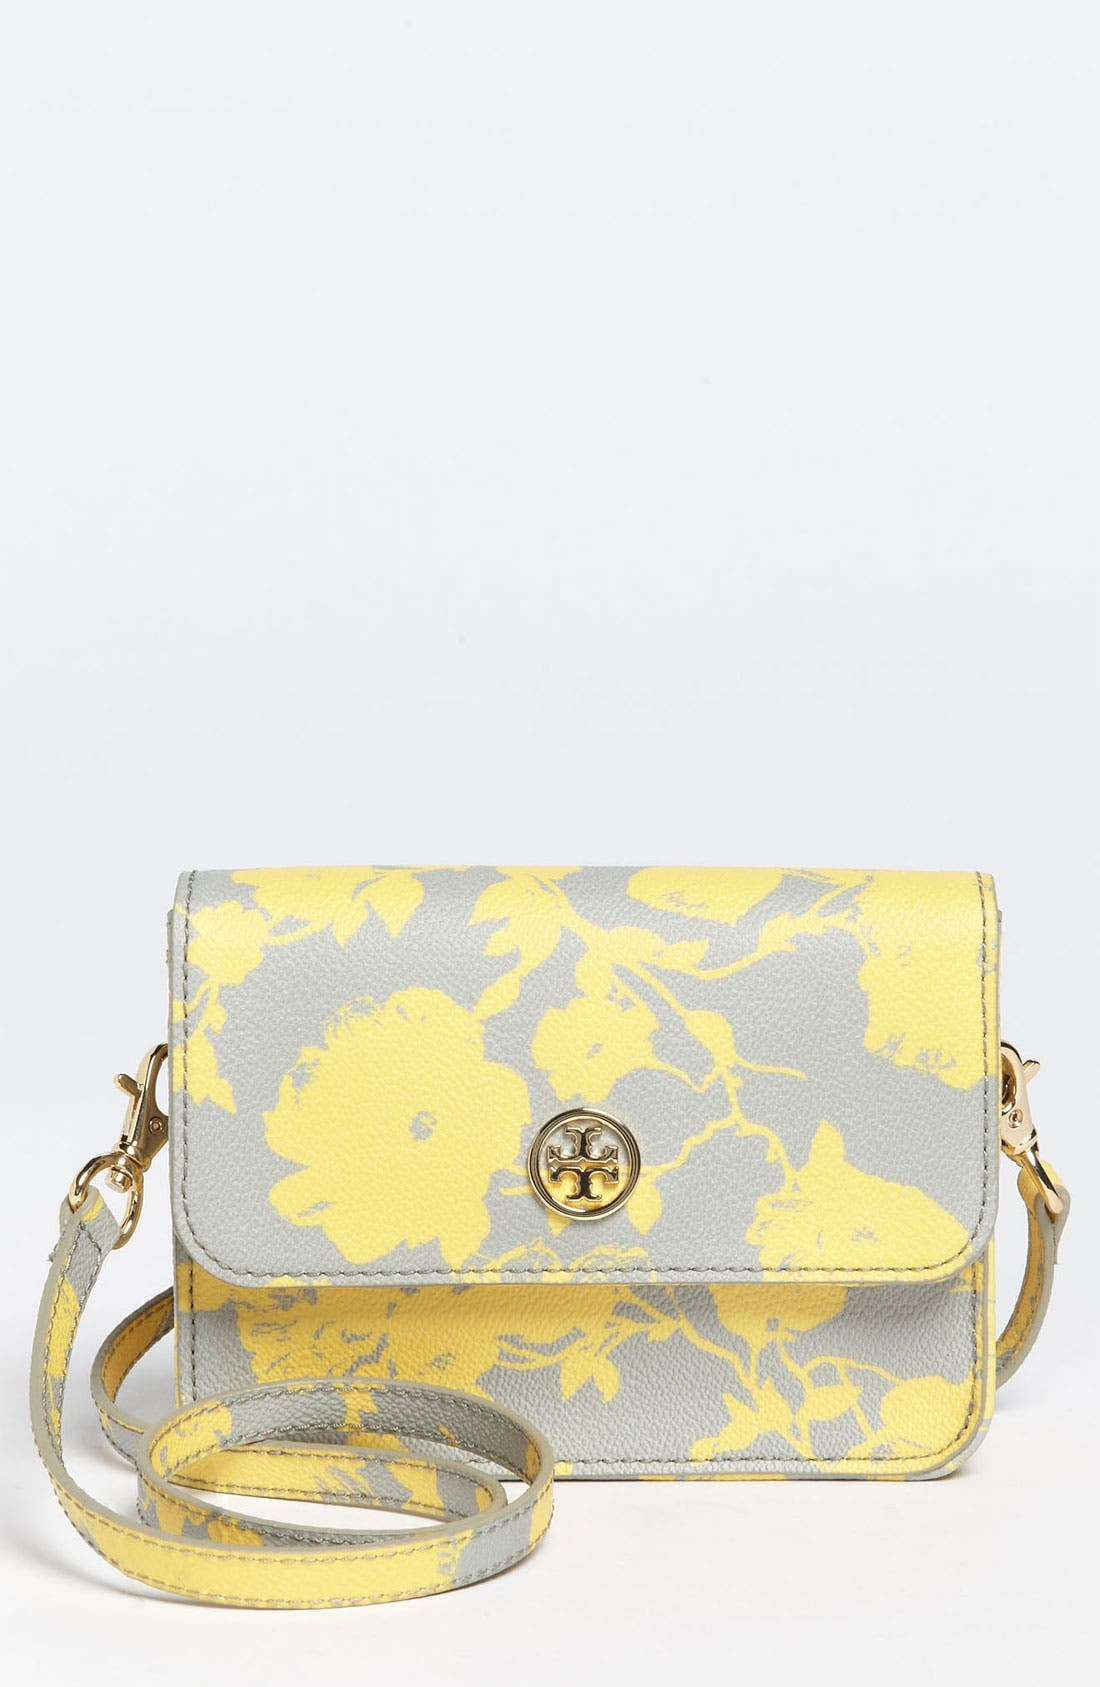 Main Image - Tory Burch 'Robinson - Mini' Crossbody Bag